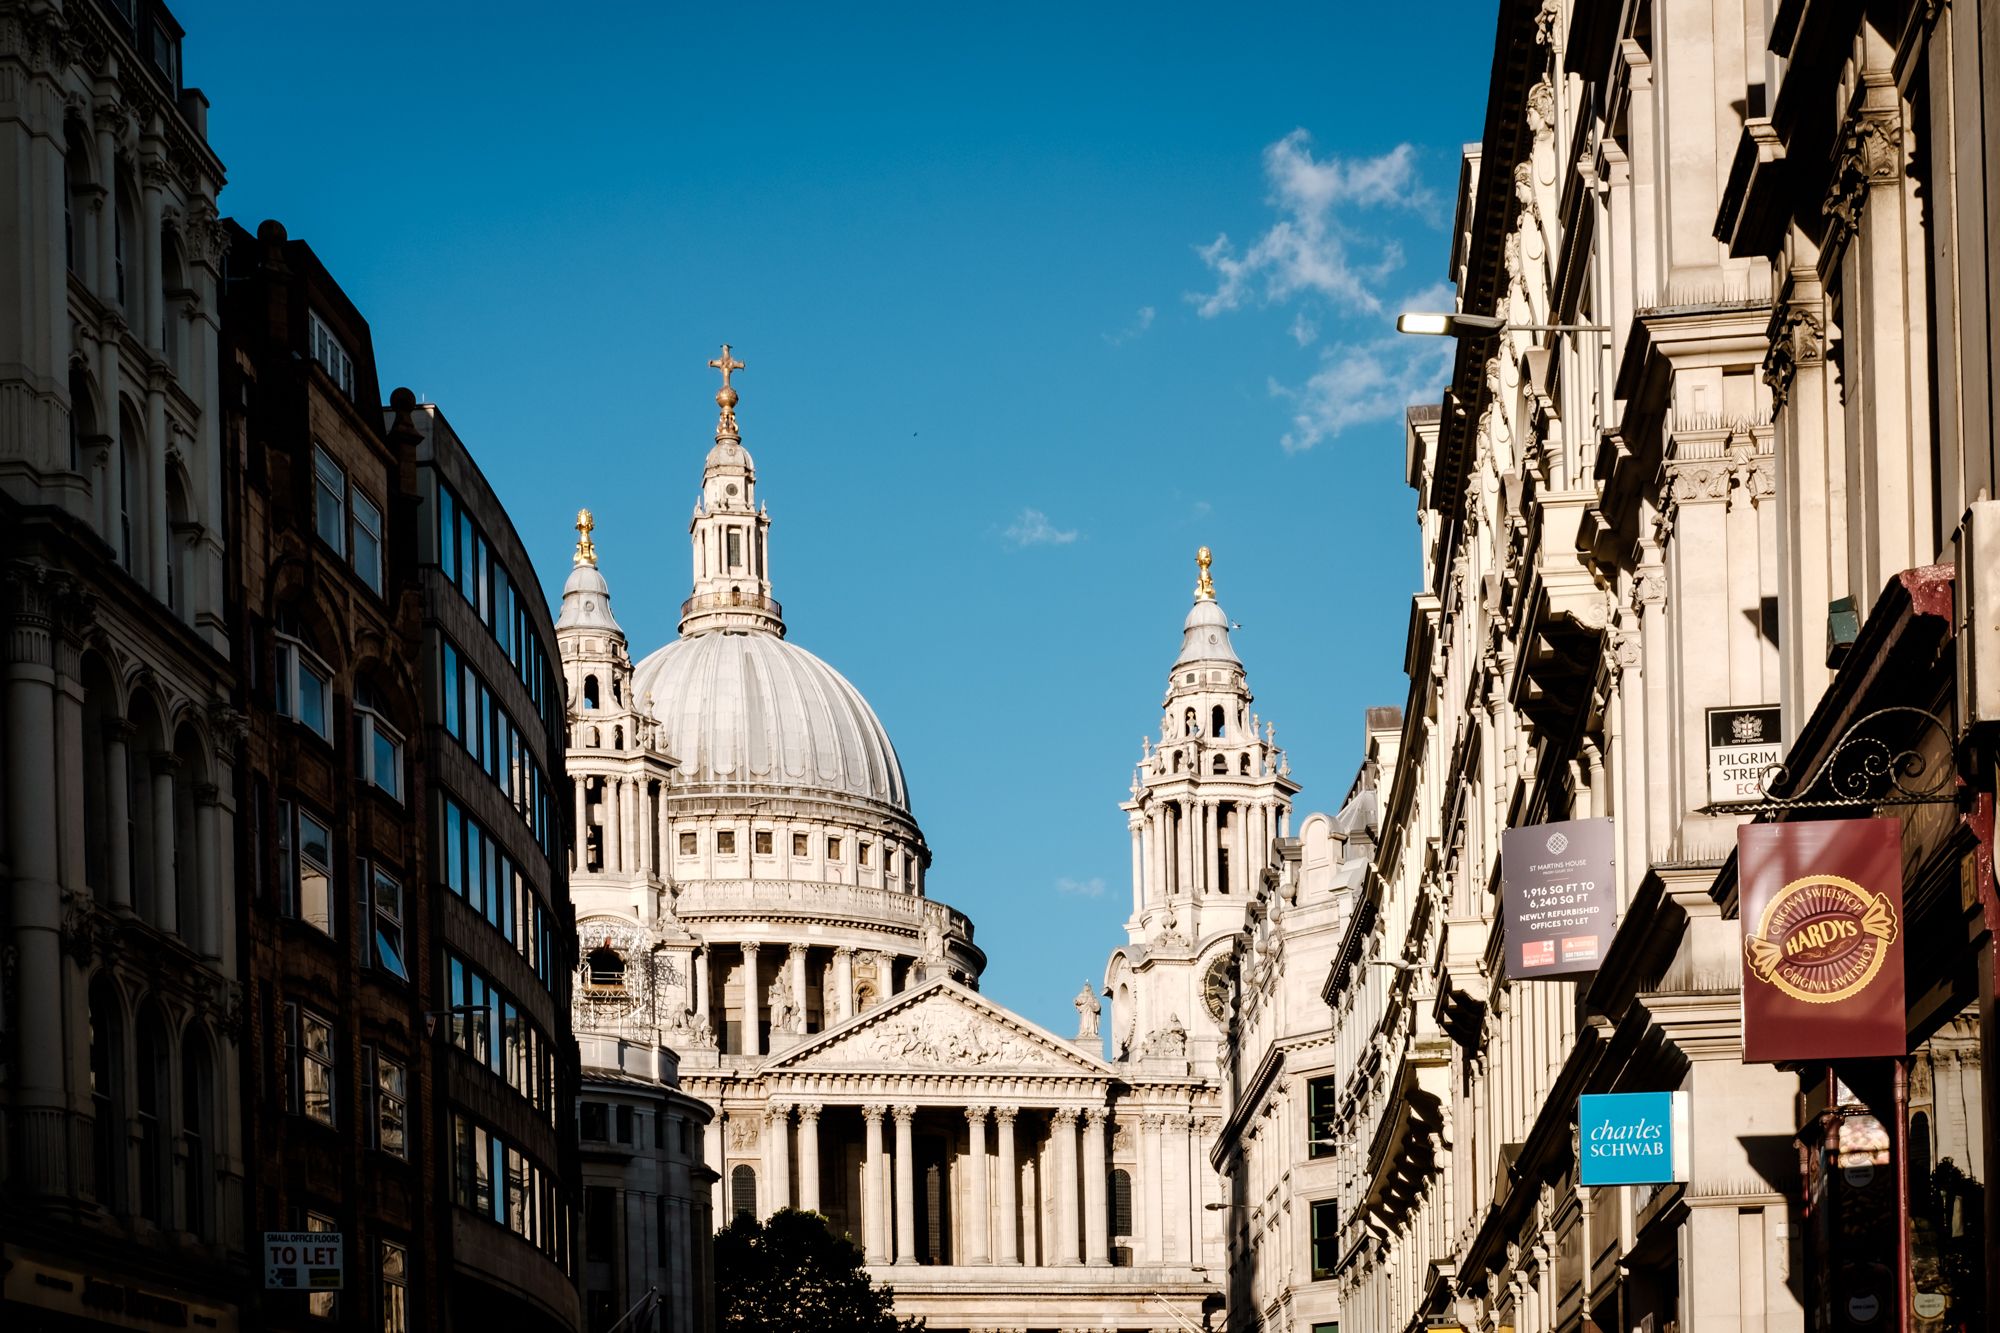 Architecture photo of St Pauls Cathedral, London by Trevor Sherwin